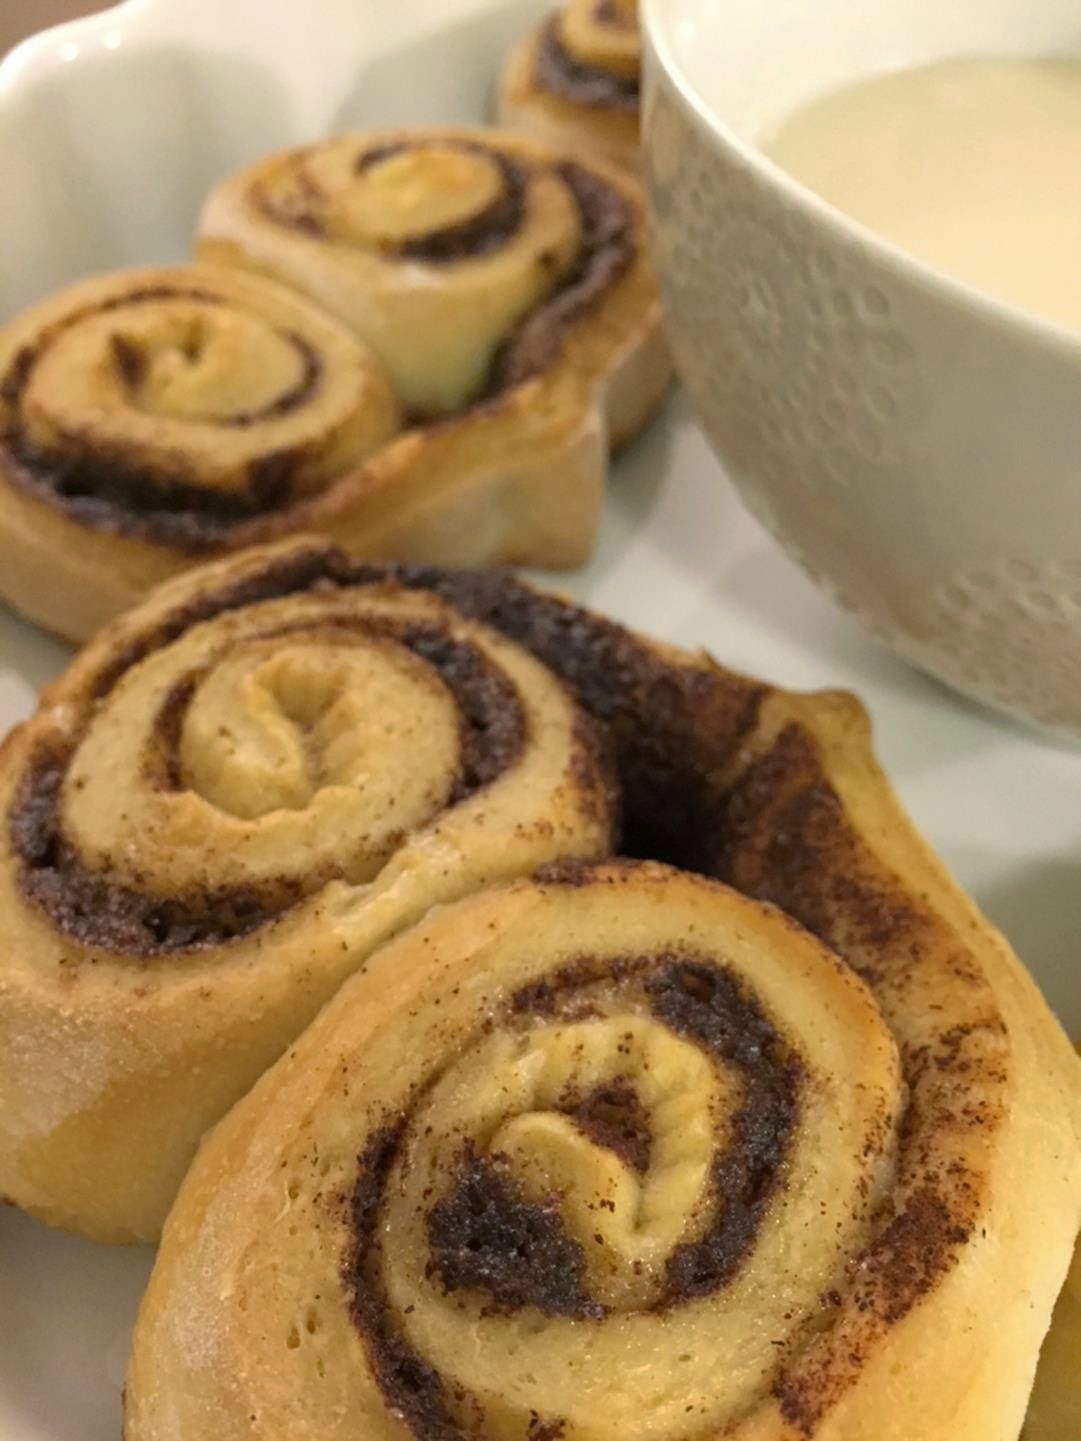 Tiffany Gaither of Delightfully Chic bakes up heart shaped cinnamon rolls for valentines day! #dchic #recipe http://delightfully-chic.blogspot.com/2015/02/for-love-of-cooking-heart-shaped.html